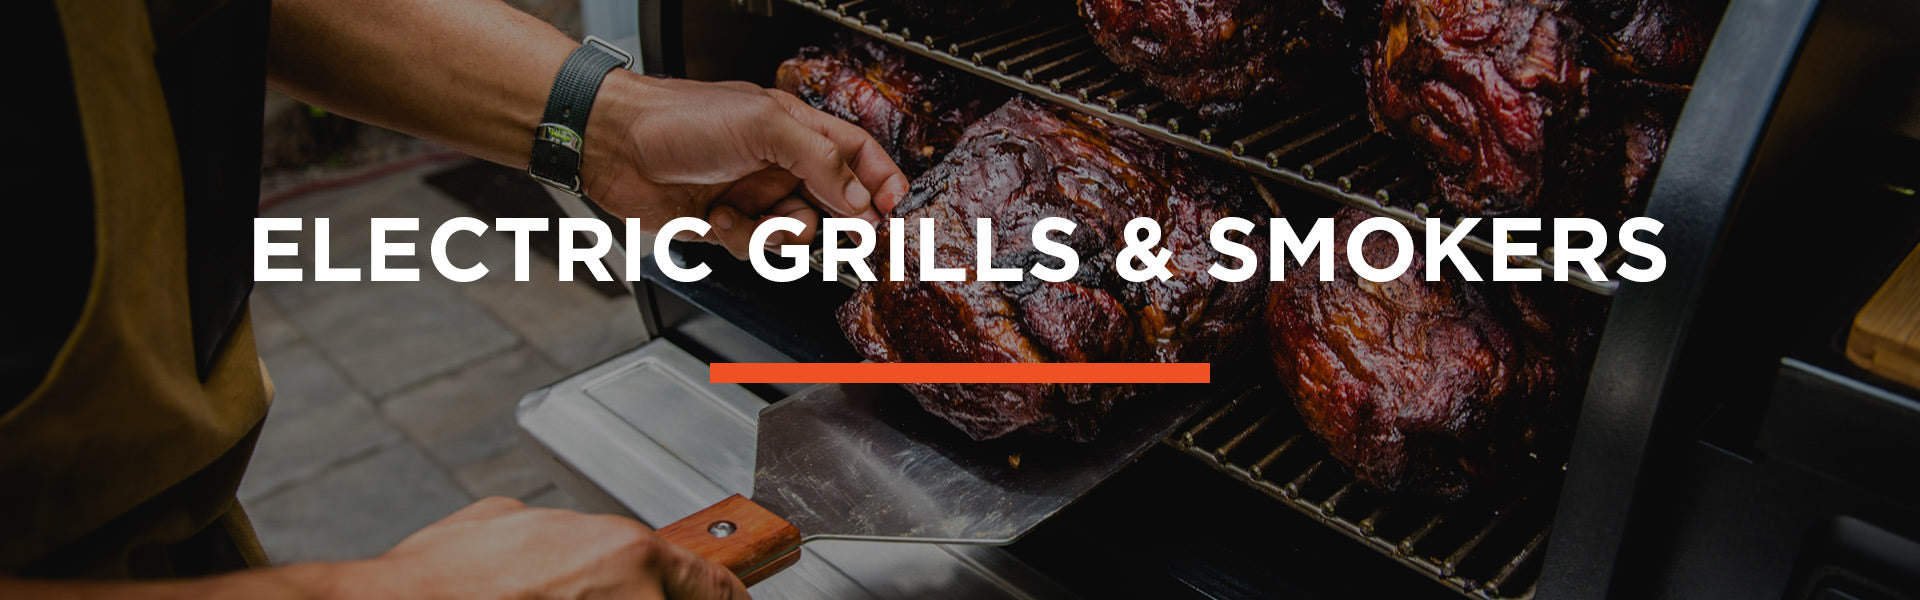 Electric Grills & Smokers